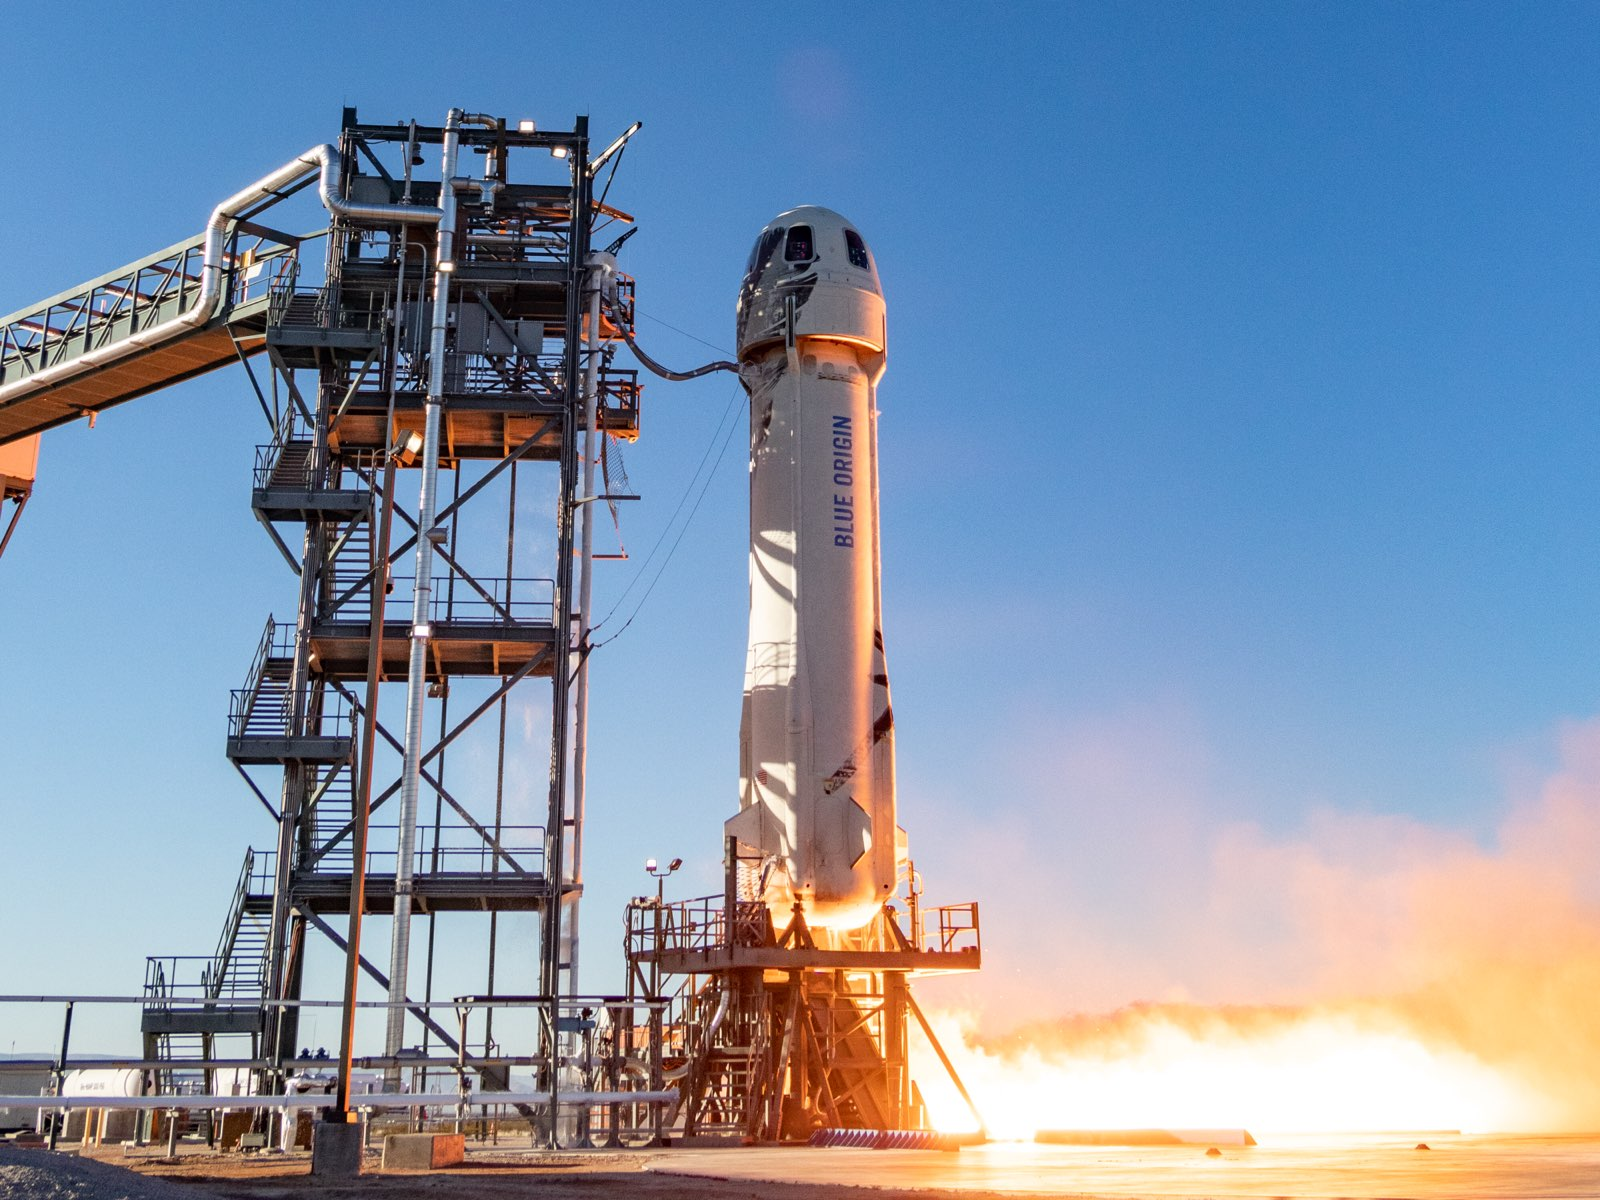 NASA and Blue Origin Help Classrooms and Researchers Reach Space - Jaime Bonetti Zeller